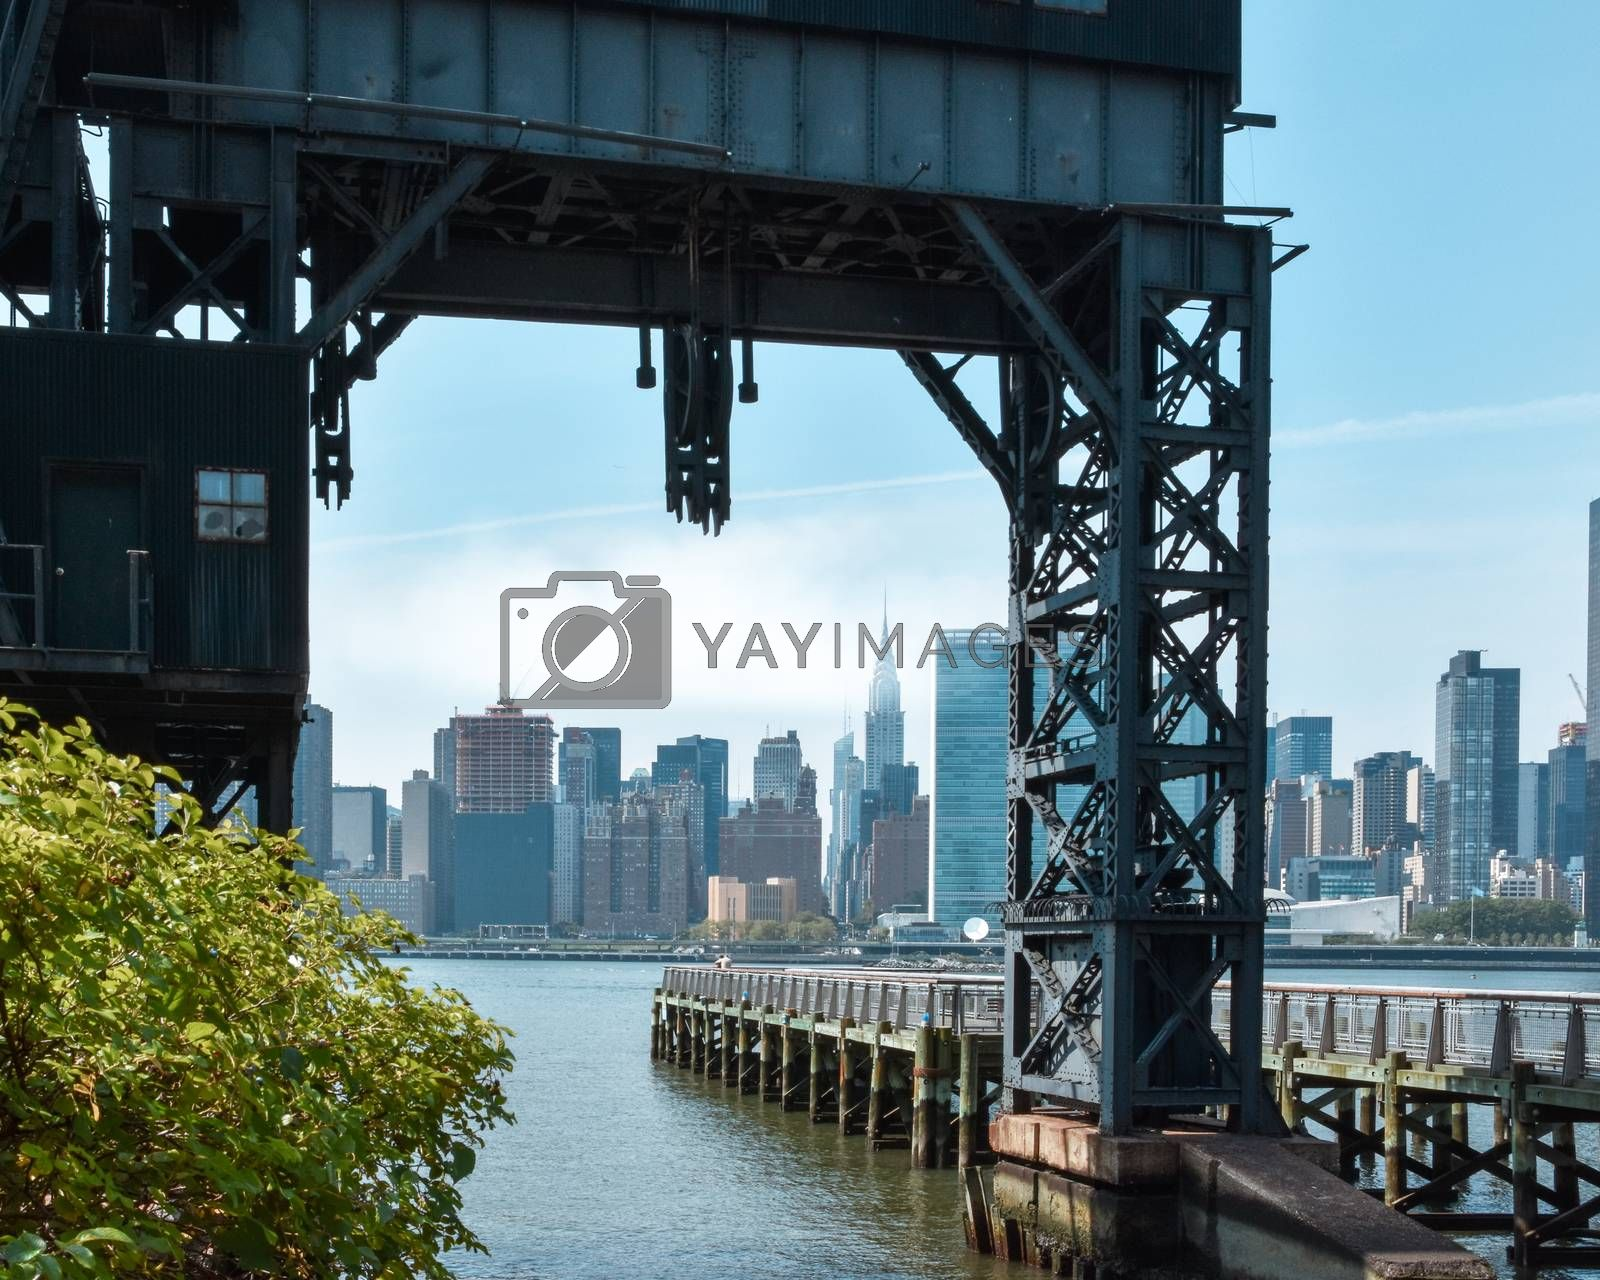 Office buildings and apartments on the horizon through the Ferry Dock at Long Island. Real estate and travel concept. Brooklyn, New York City, USA